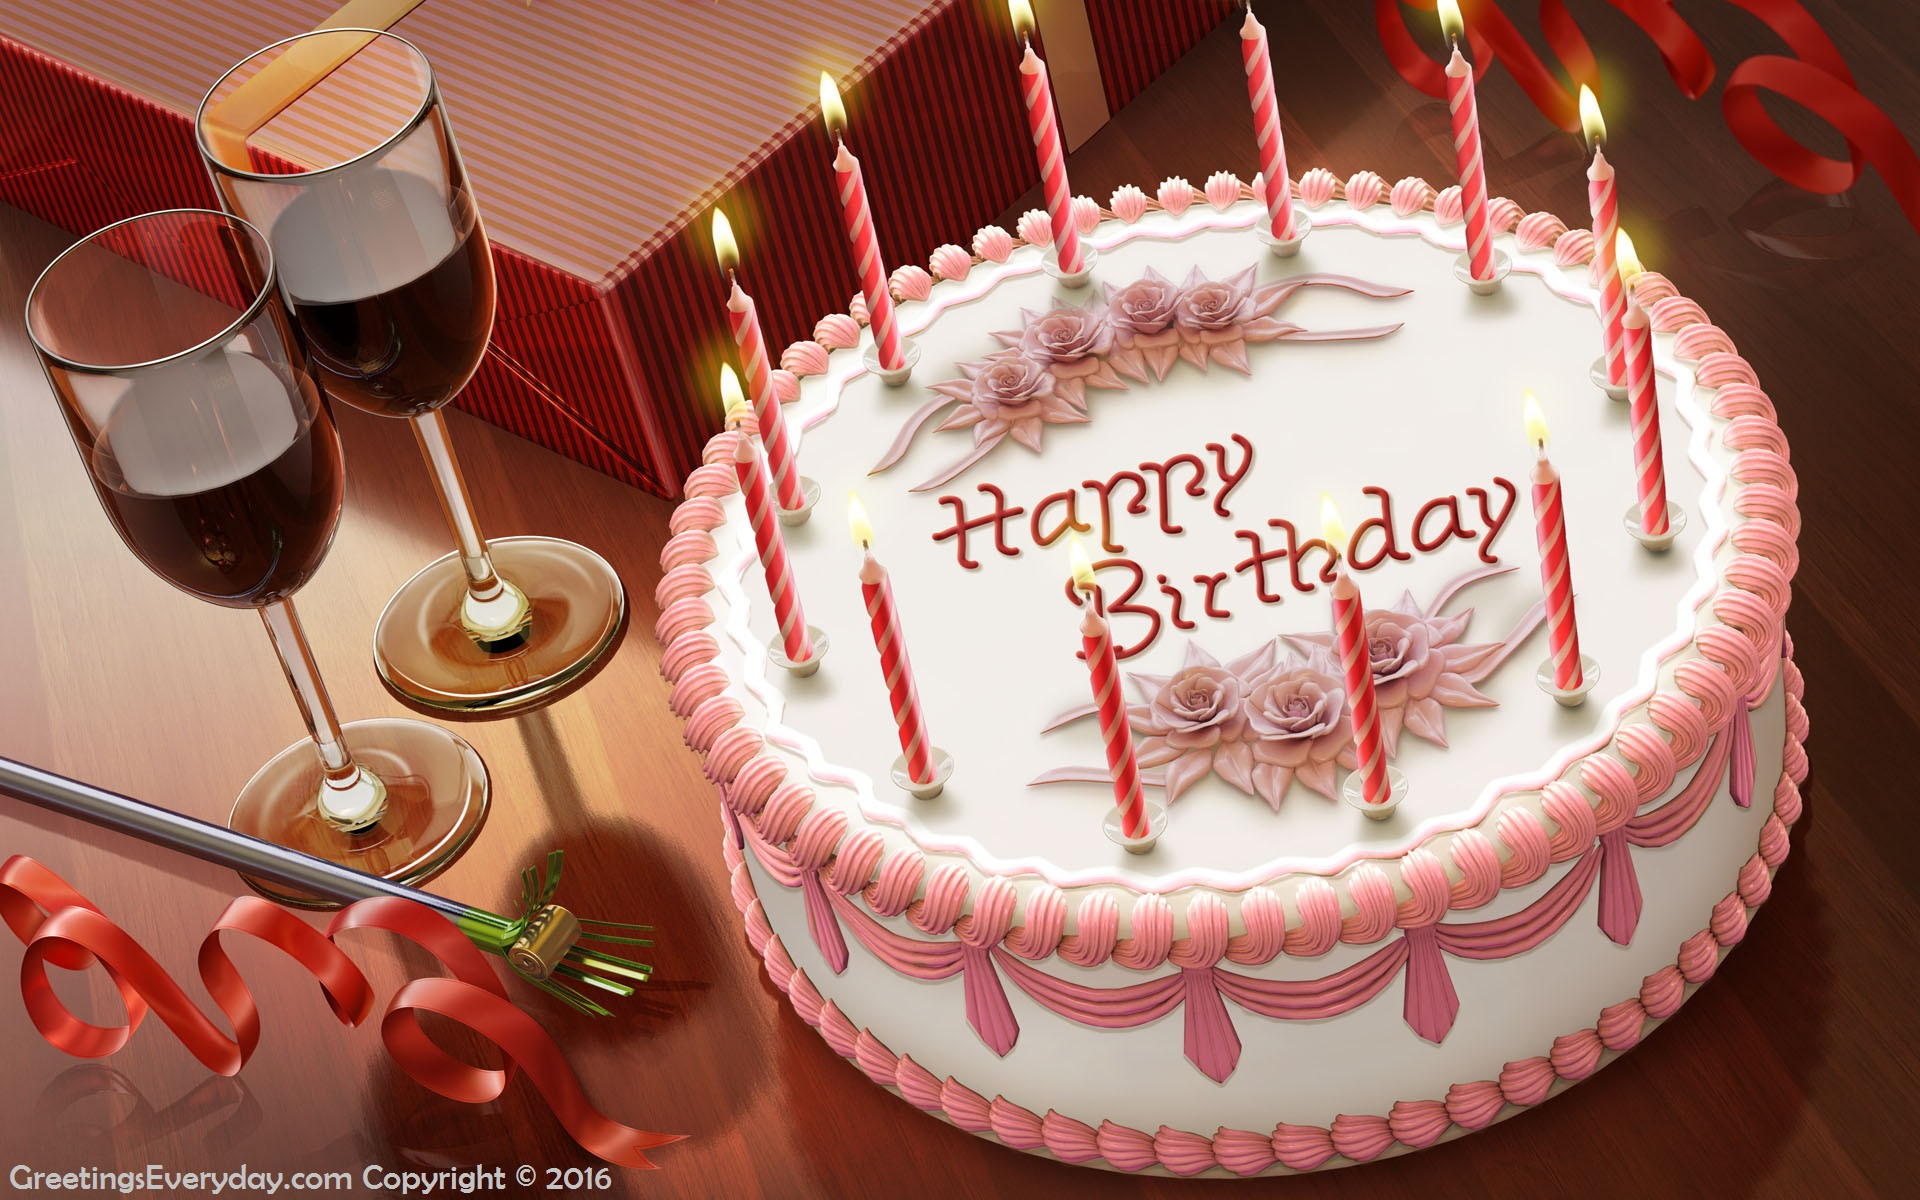 Download Free Happy Birthday Wishes HD Wallpapers